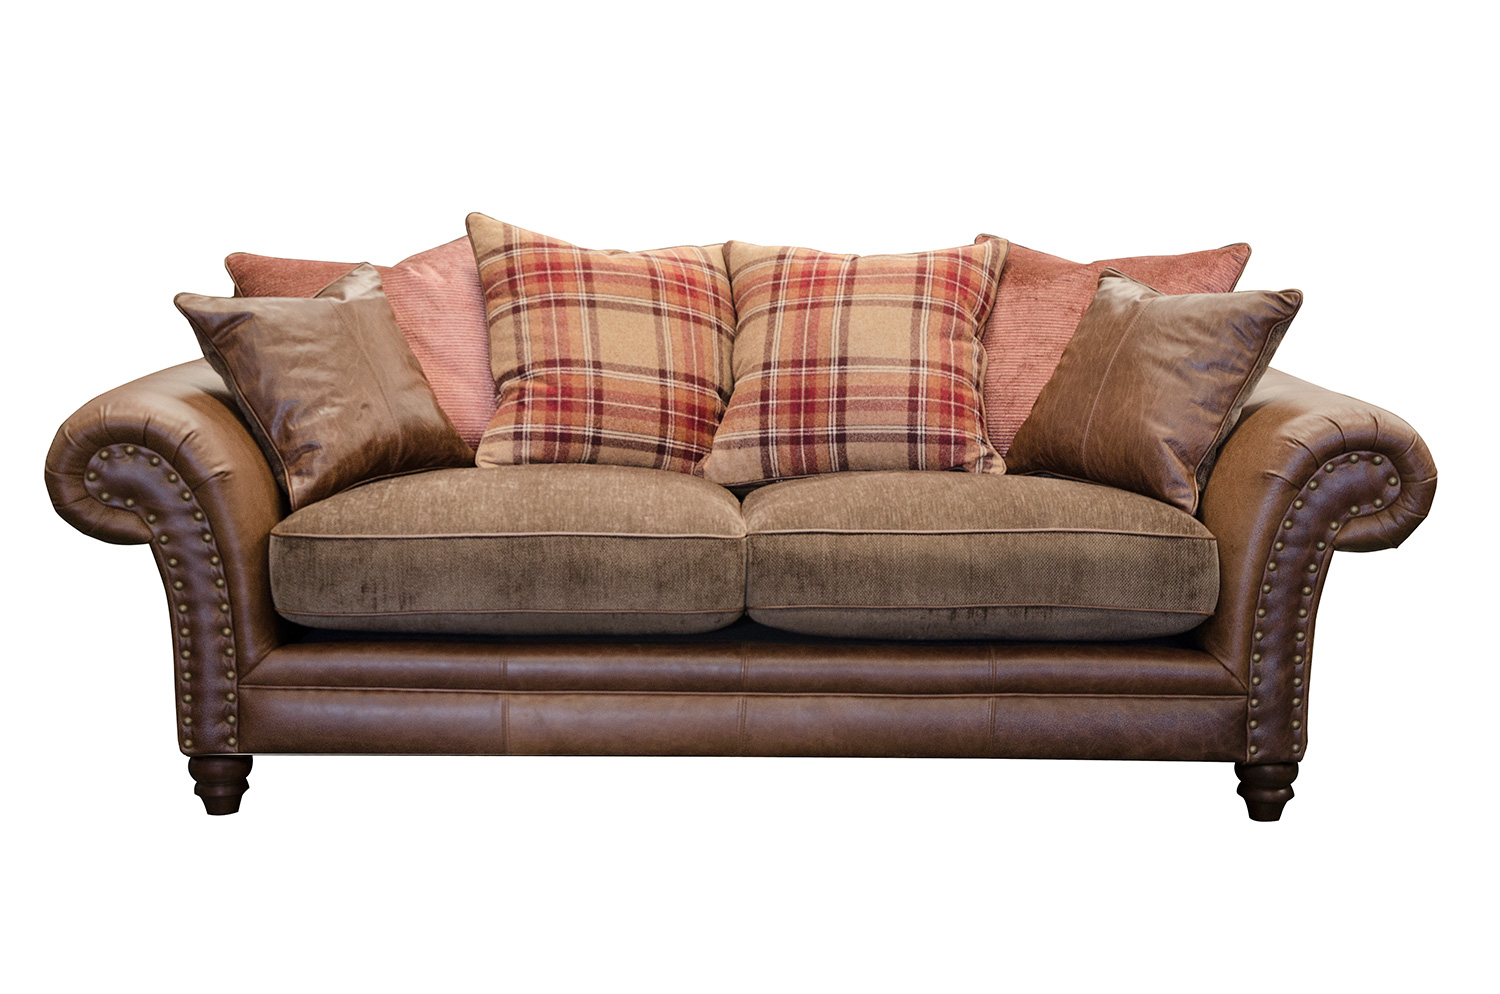 Hudson 3 seater sofa alexander and james for Sofas